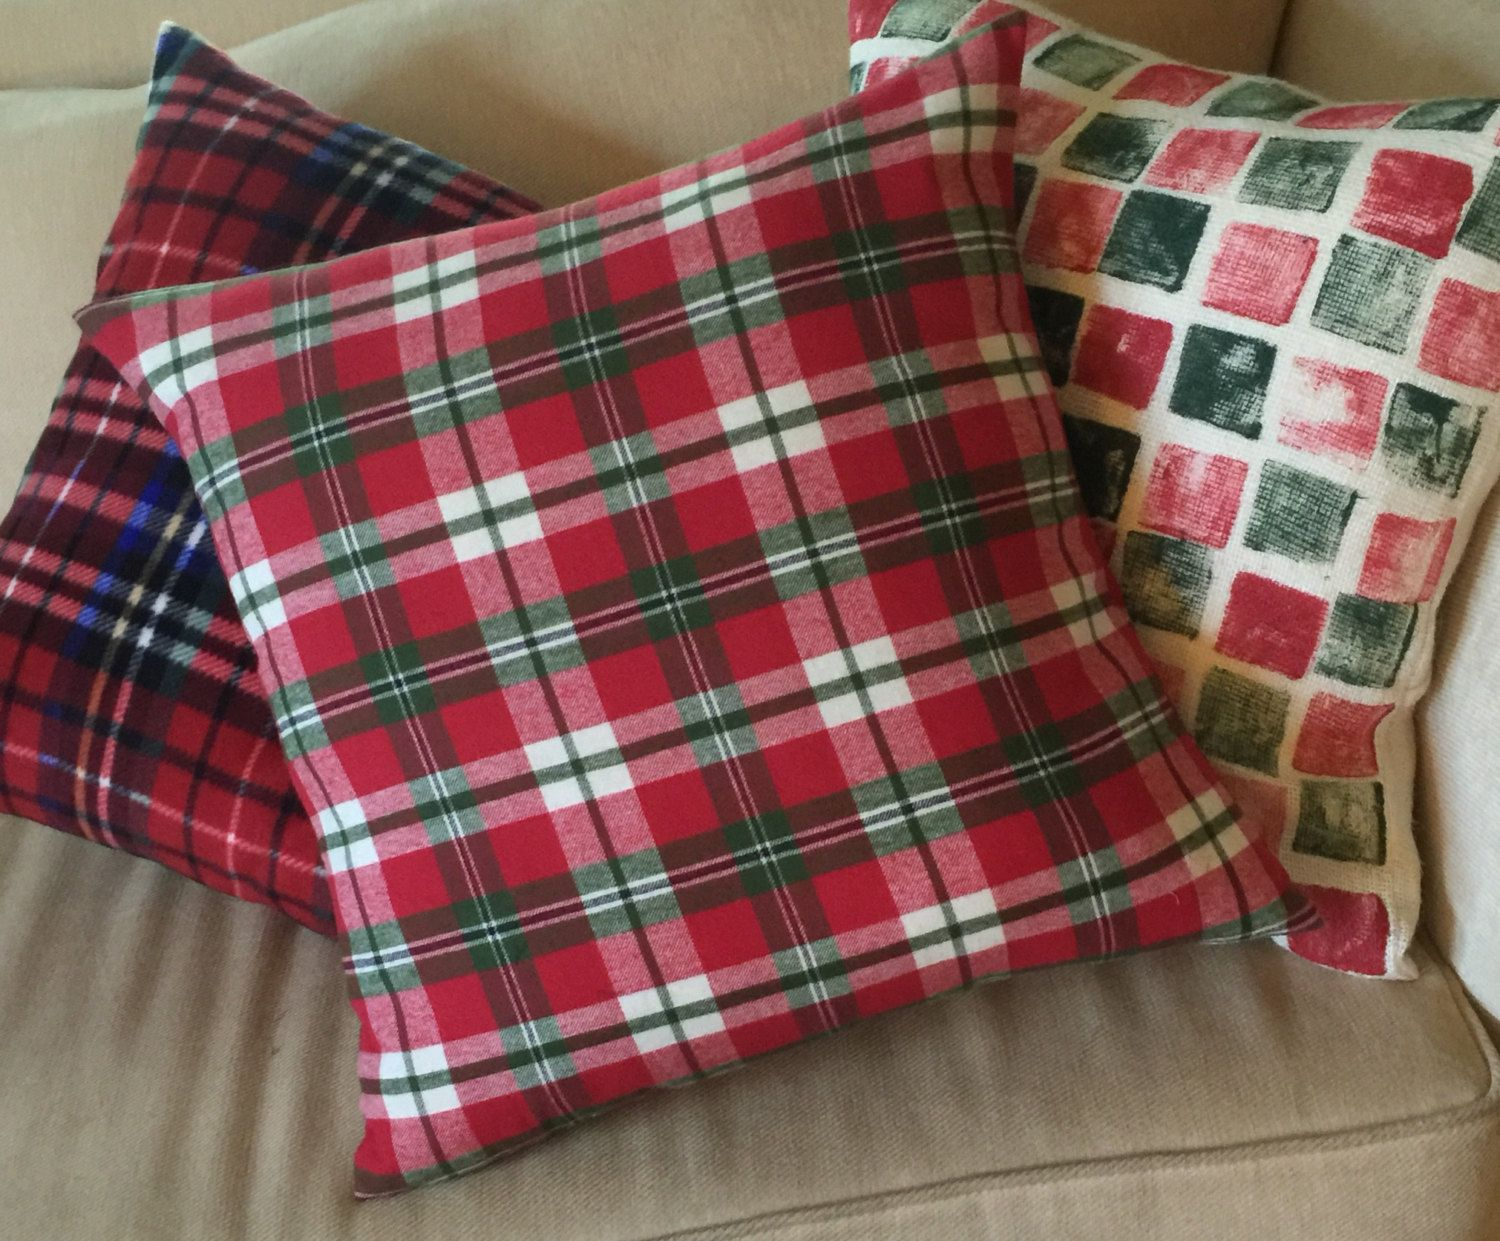 our pillows dog bed decorative burberry crafty home decor accent going